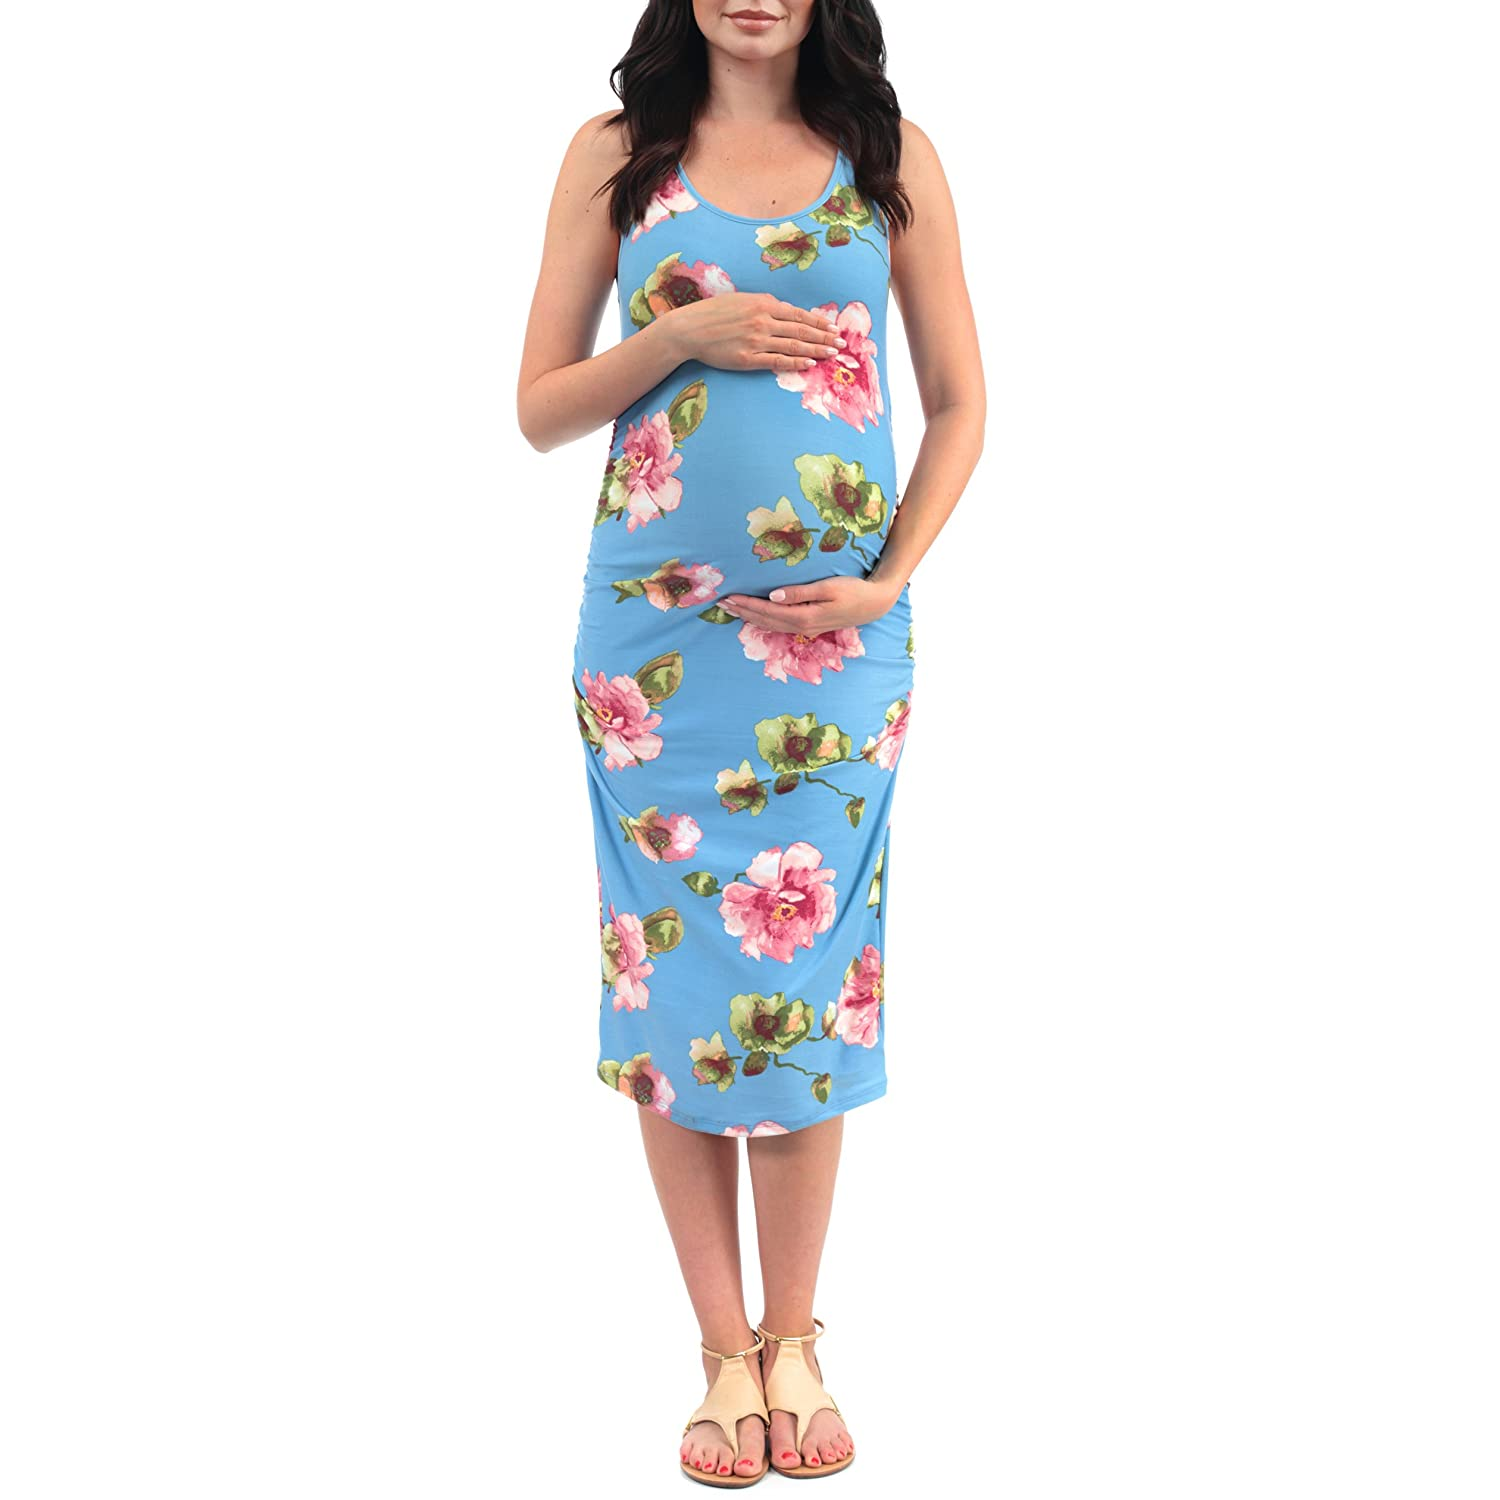 c79ece58d5a02 Women's Side Ruched Tank Maternity Dress - Made in USA at Amazon Women's  Clothing store: